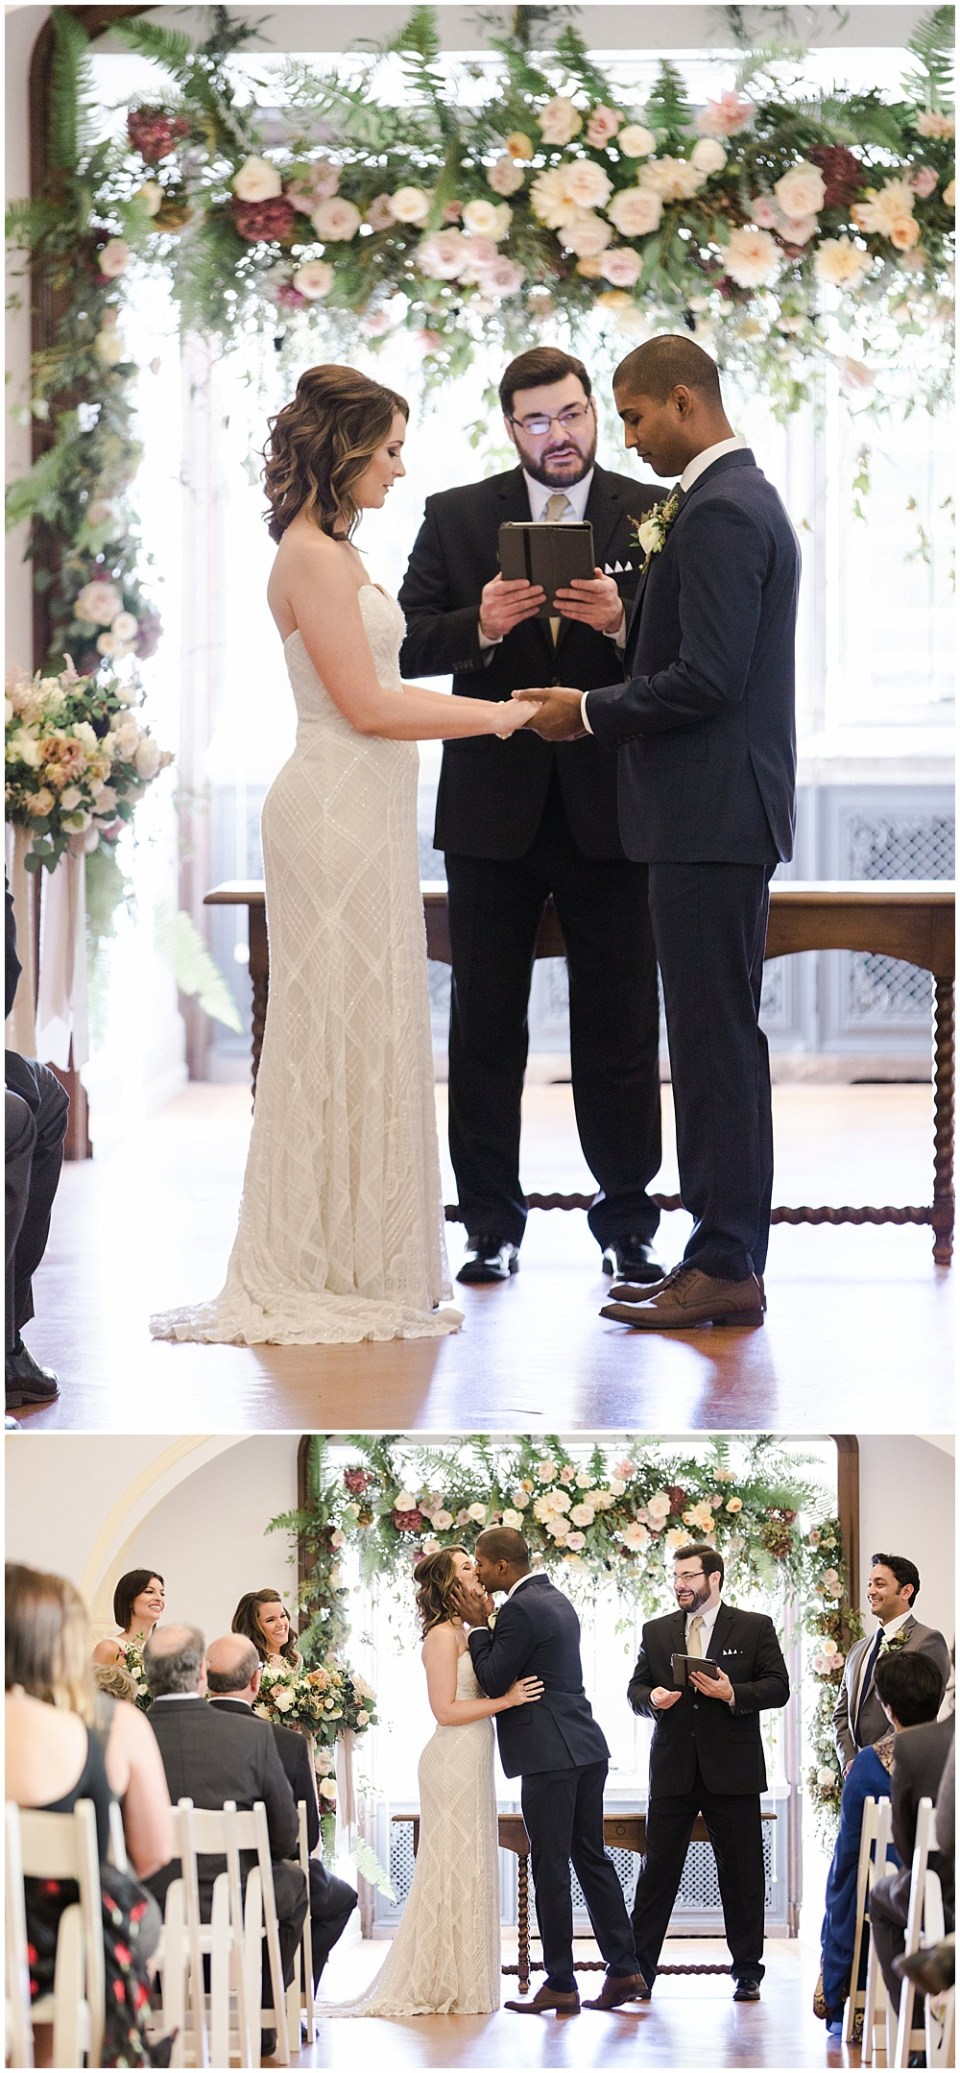 Floral arch for ceremony   Navy and Gold Wedding at Laurel Hall with Ivan & Louise Photography + Jessica Dum Wedding Coordination